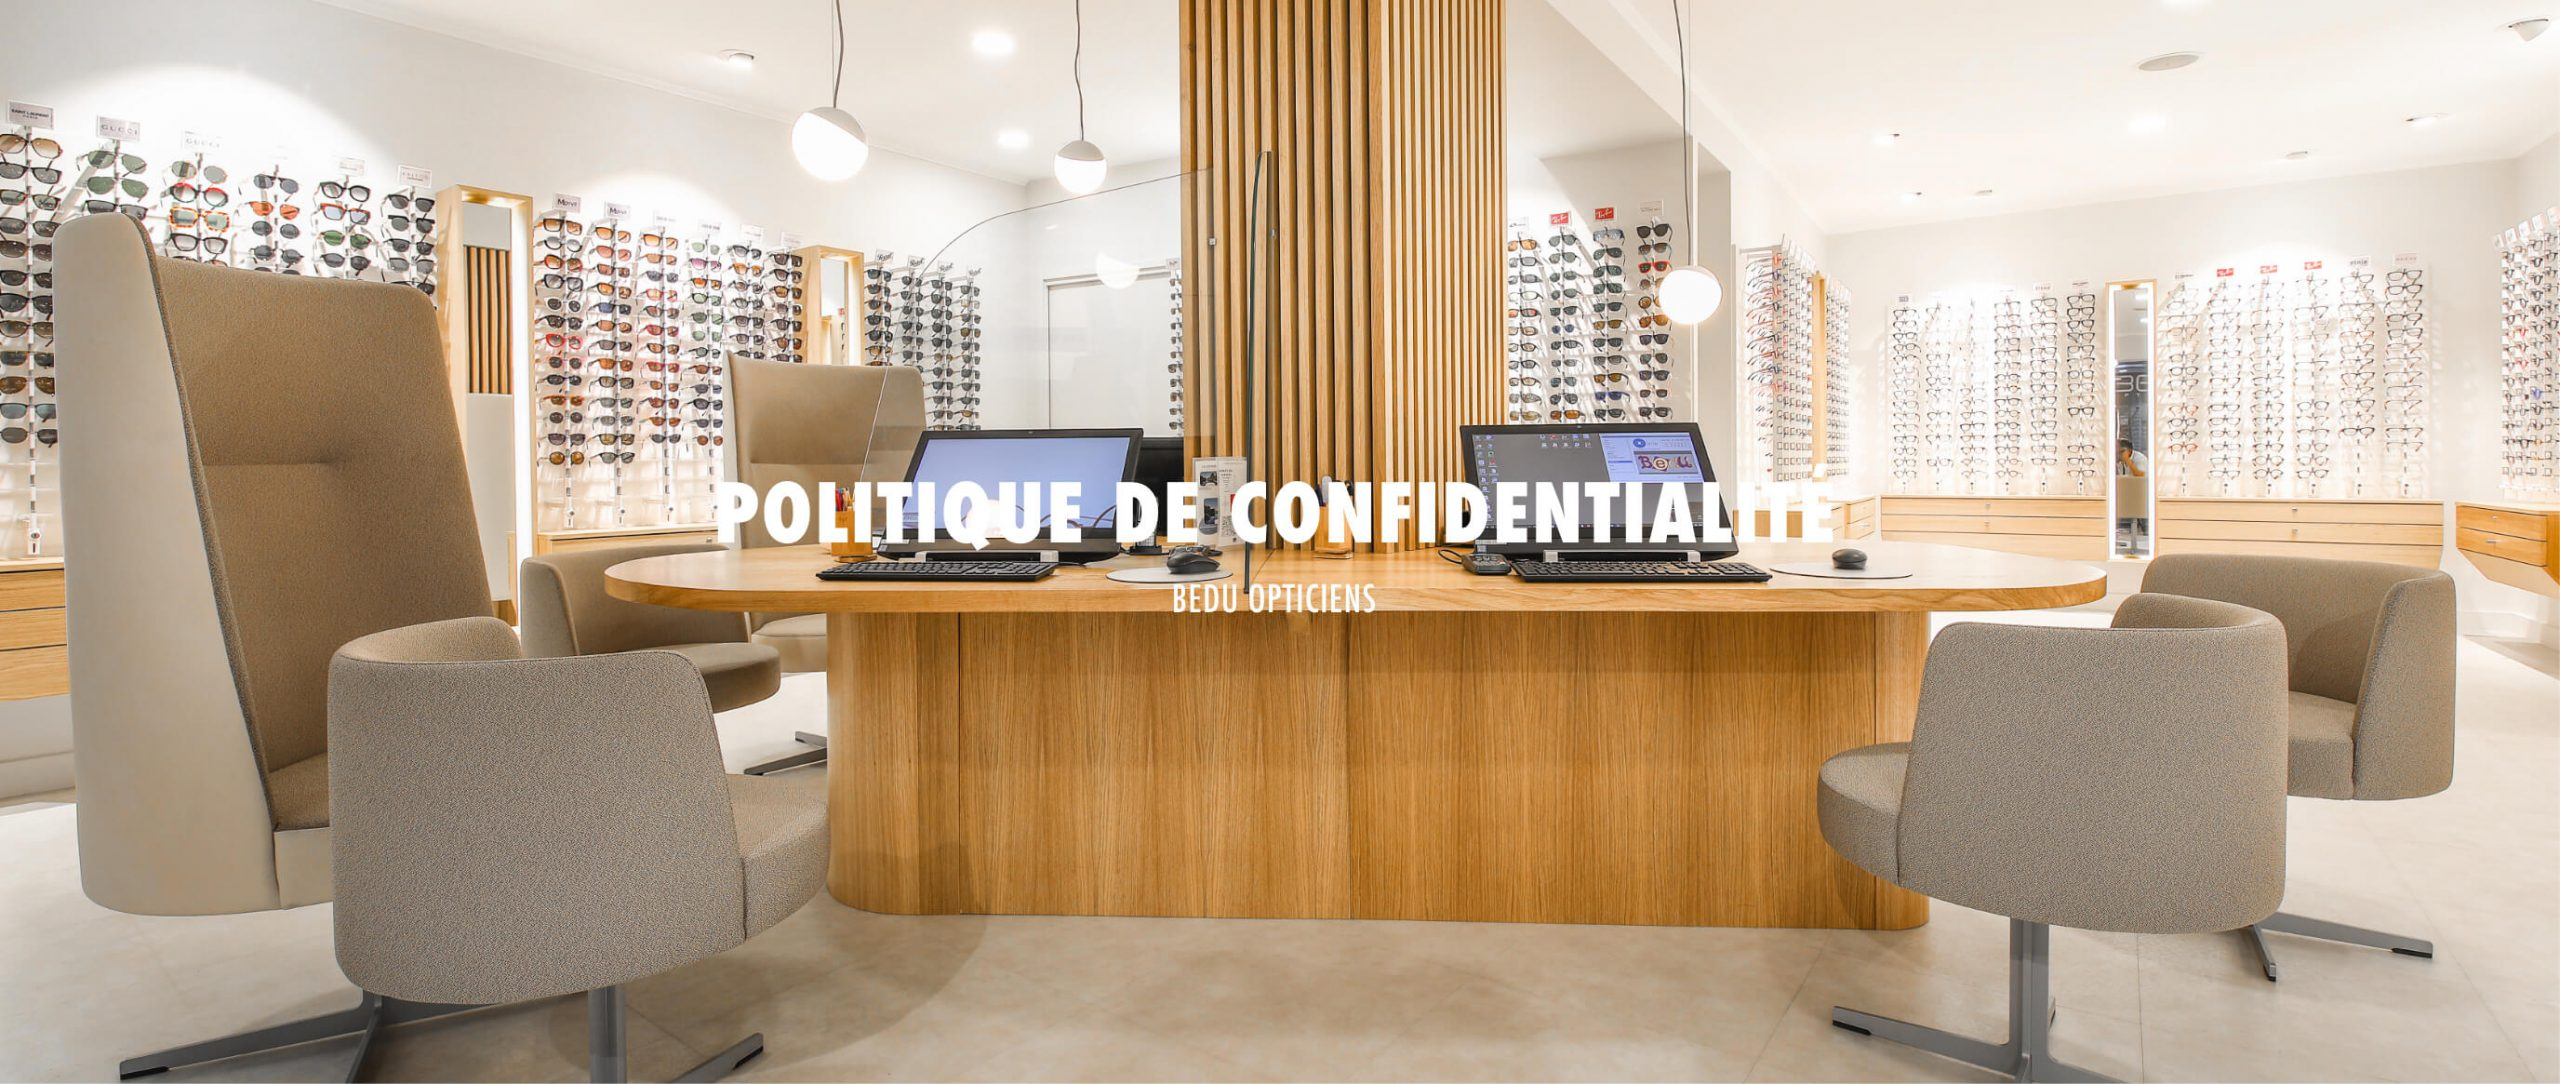 politique-de-confidentialite-desktop